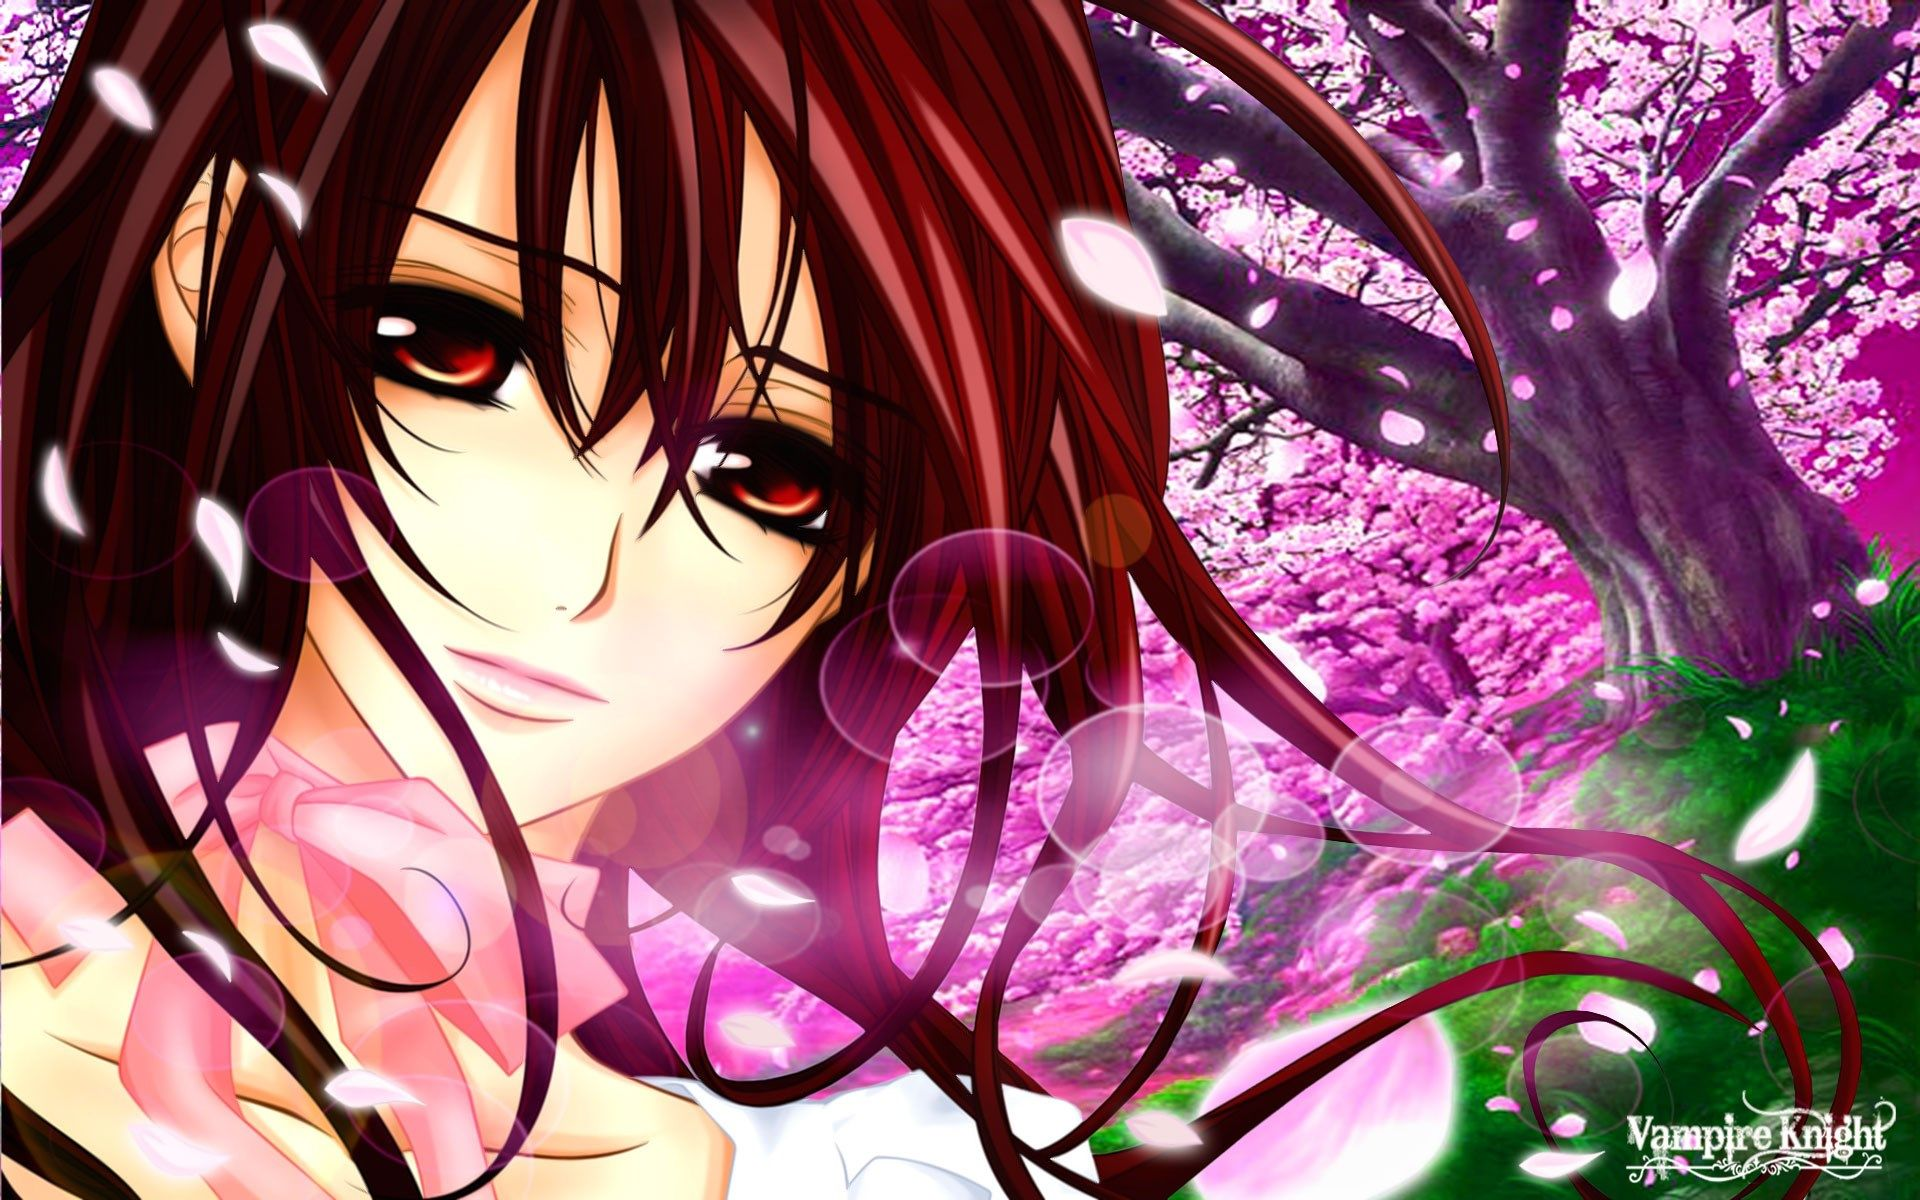 vampire knight background wallpaper free, 1920x1200 (459 kb